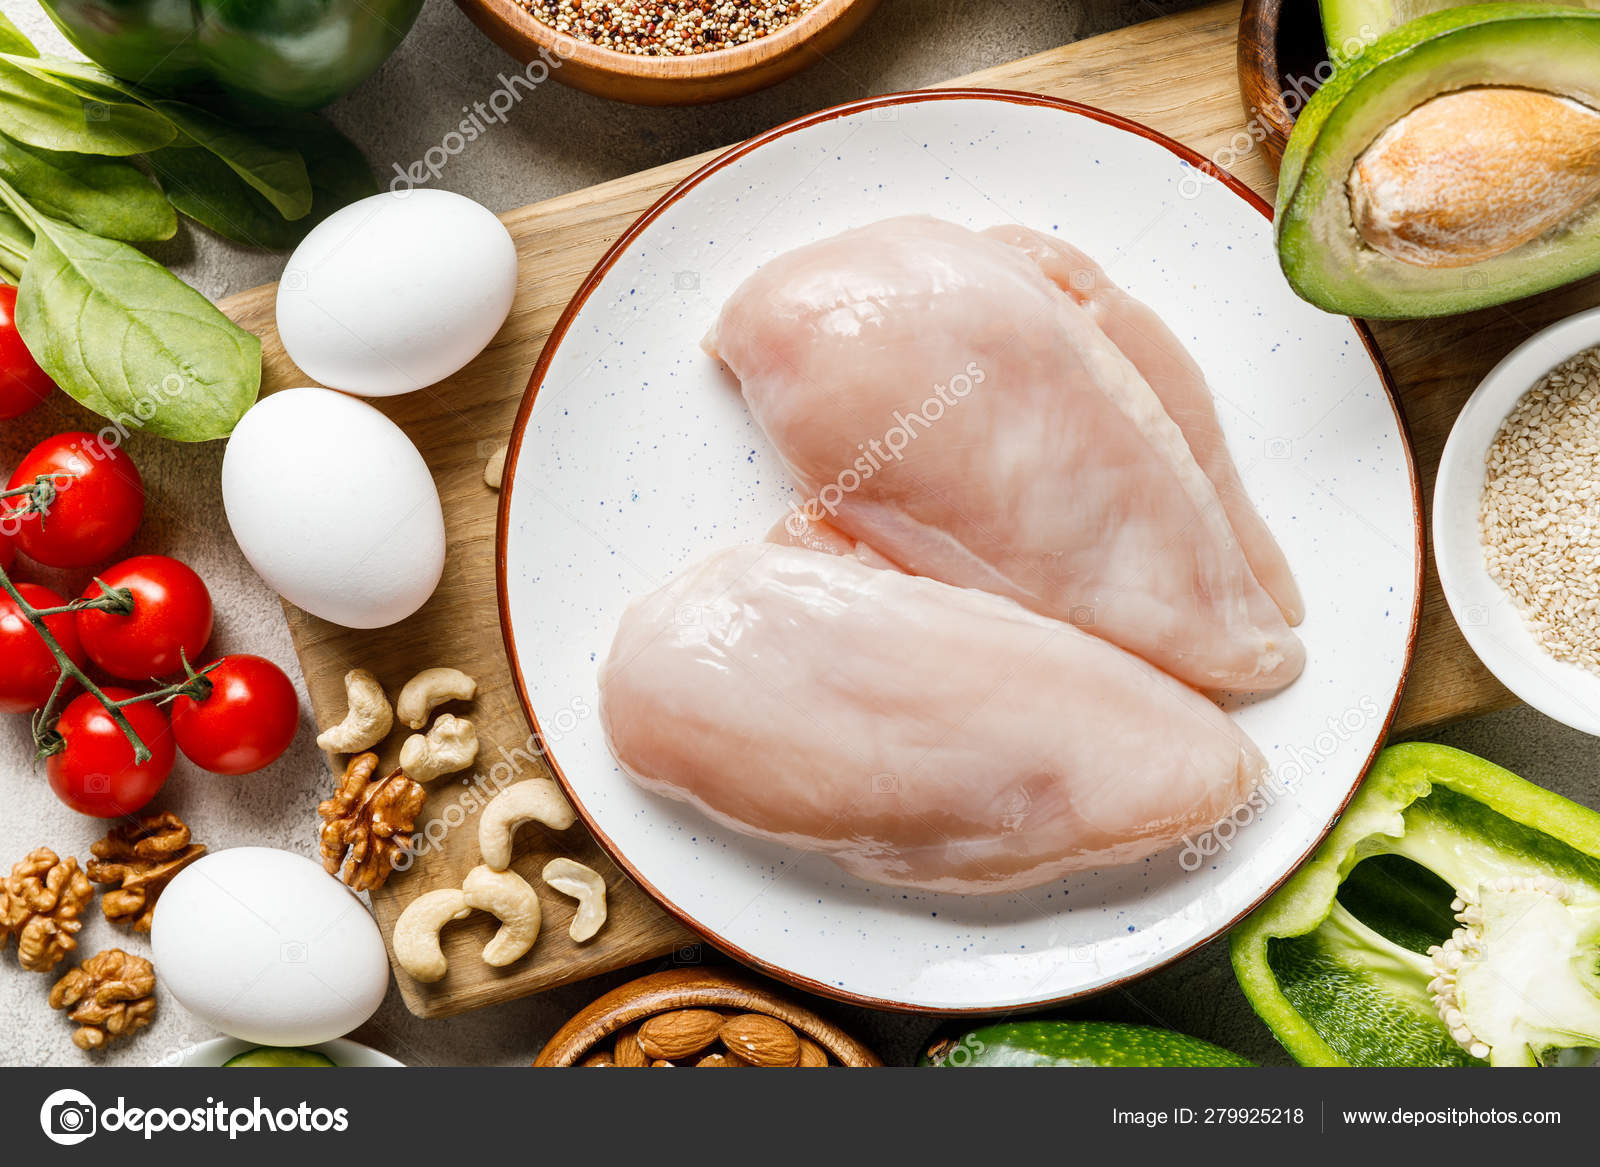 Fresh raw chicken & eggs